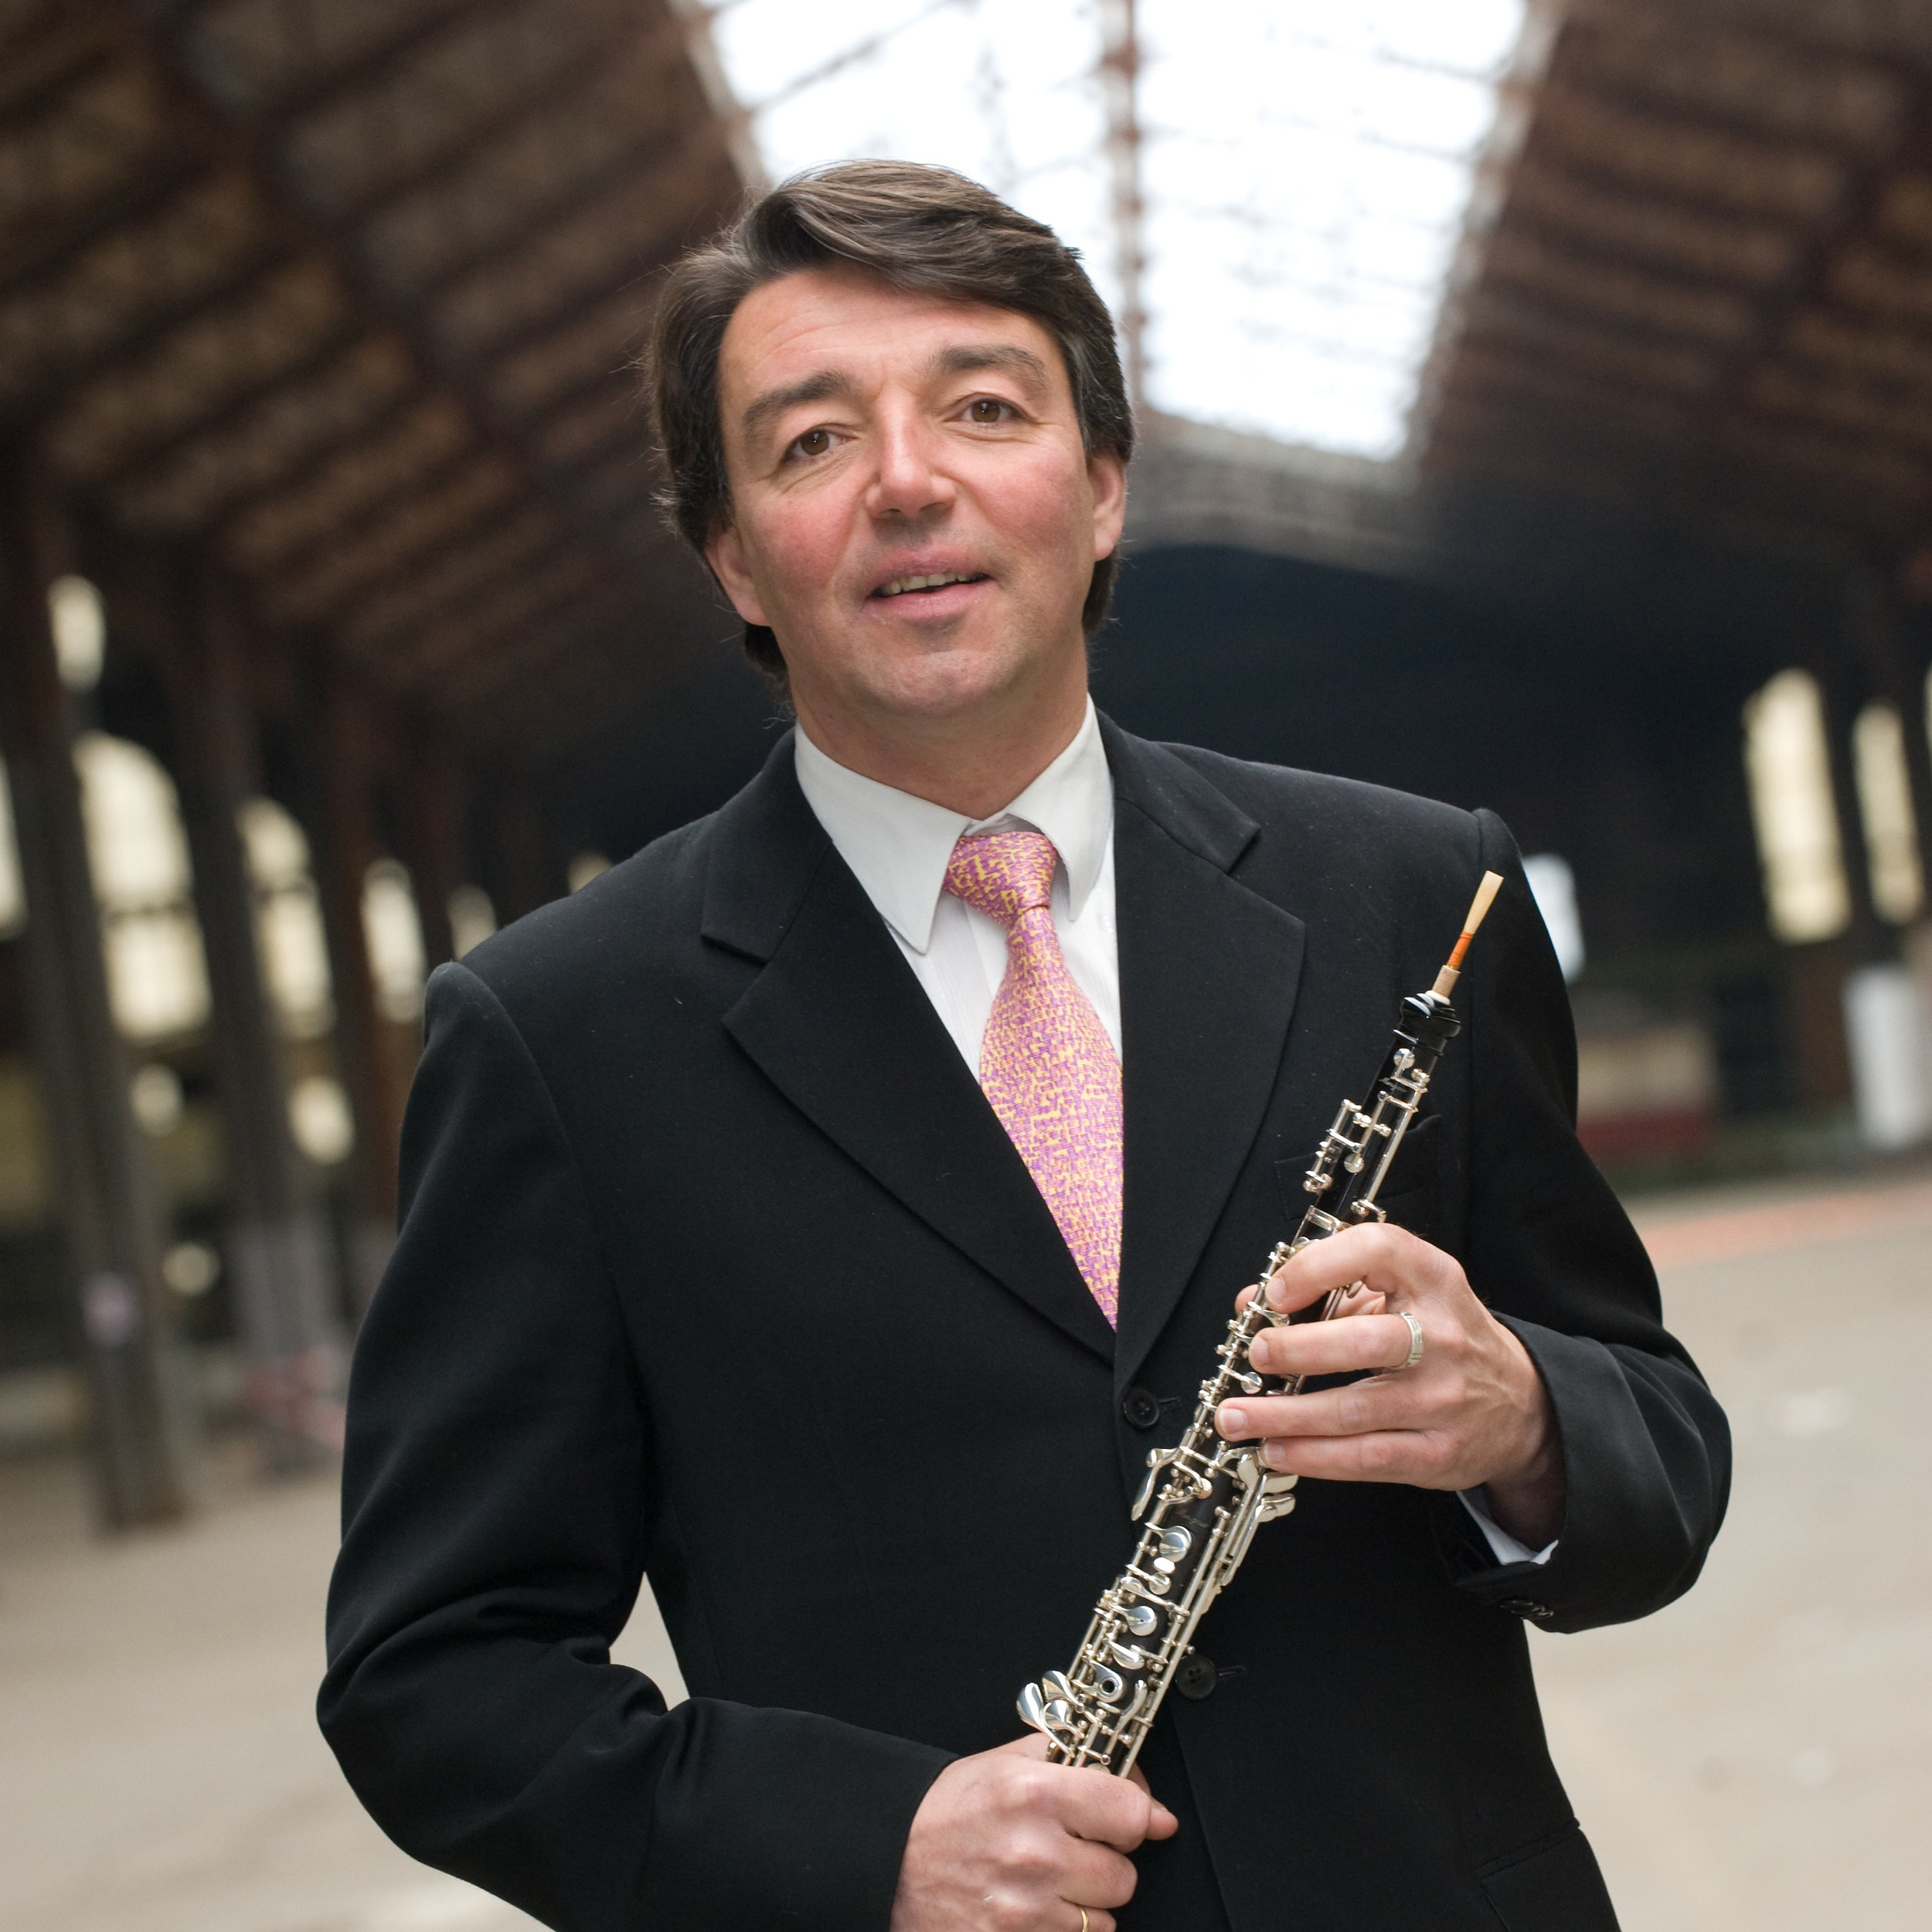 Thierry Cammaert   Teacher at the academies of Ixelles, Uccle, Watermael-Boitsfort and Nivelles.  Teacher of methodology of oboe at the Conservatoire Royal de Bruxelles and at the IMEP in Namur.  First Prize-winner of oboe and English horn at the Koninklijk Conservatorium Brussel (Paul Dombrecht), first prize-winner of chamber music. Member of the ensemble 'Qwartz'.  Records CDs. Performs with various groups and orchestras, (Vlaams Radio Orkest, Chamber Orchestra of Wallonia, Musiques Nouvelles, Philharmonic Orchestra of Liège, rock band Venus). He records for Jofroi, G. Montagné, Miam Monster Miam, Line Adam, Photis Ionatos … This eclecticism makes him travel within the European community, in Eastern Europe, China, South Korea, Africa (Togo, Benin, Tanzania, Kenya), Canada and the U.S.A.